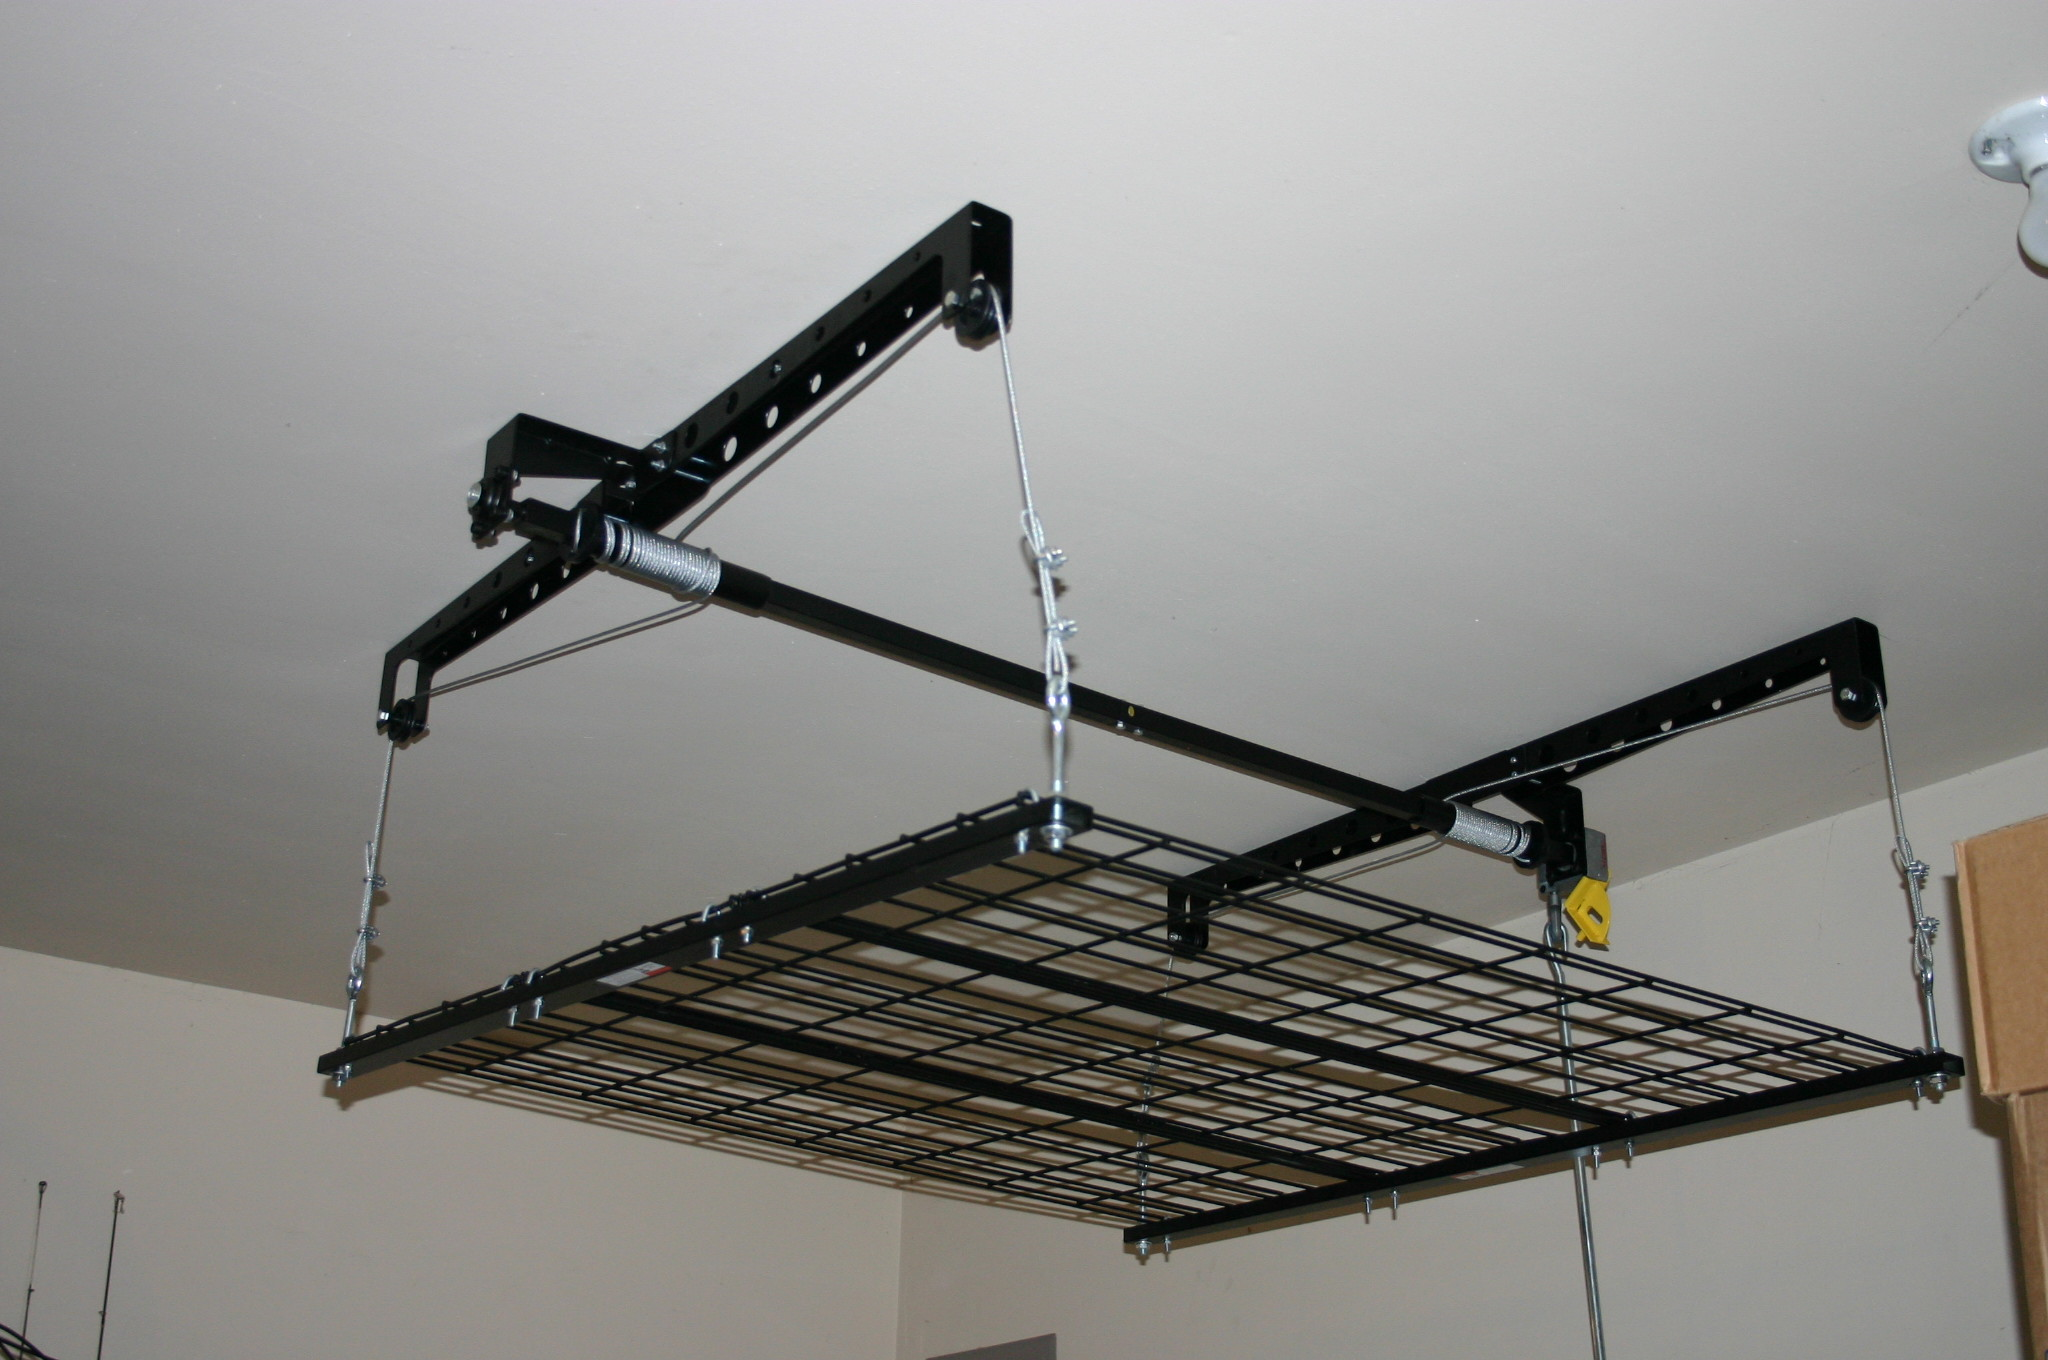 garage attic lift system with Racor Storage Solutions Review Giveaway Us 1110 on 4812201334 moreover Garage Ceiling Storage Loft further Garage Trailer Lift likewise Racor Storage Solutions Review Giveaway Us 1110 moreover Fakro Attic Ladder Installation Slideshows.